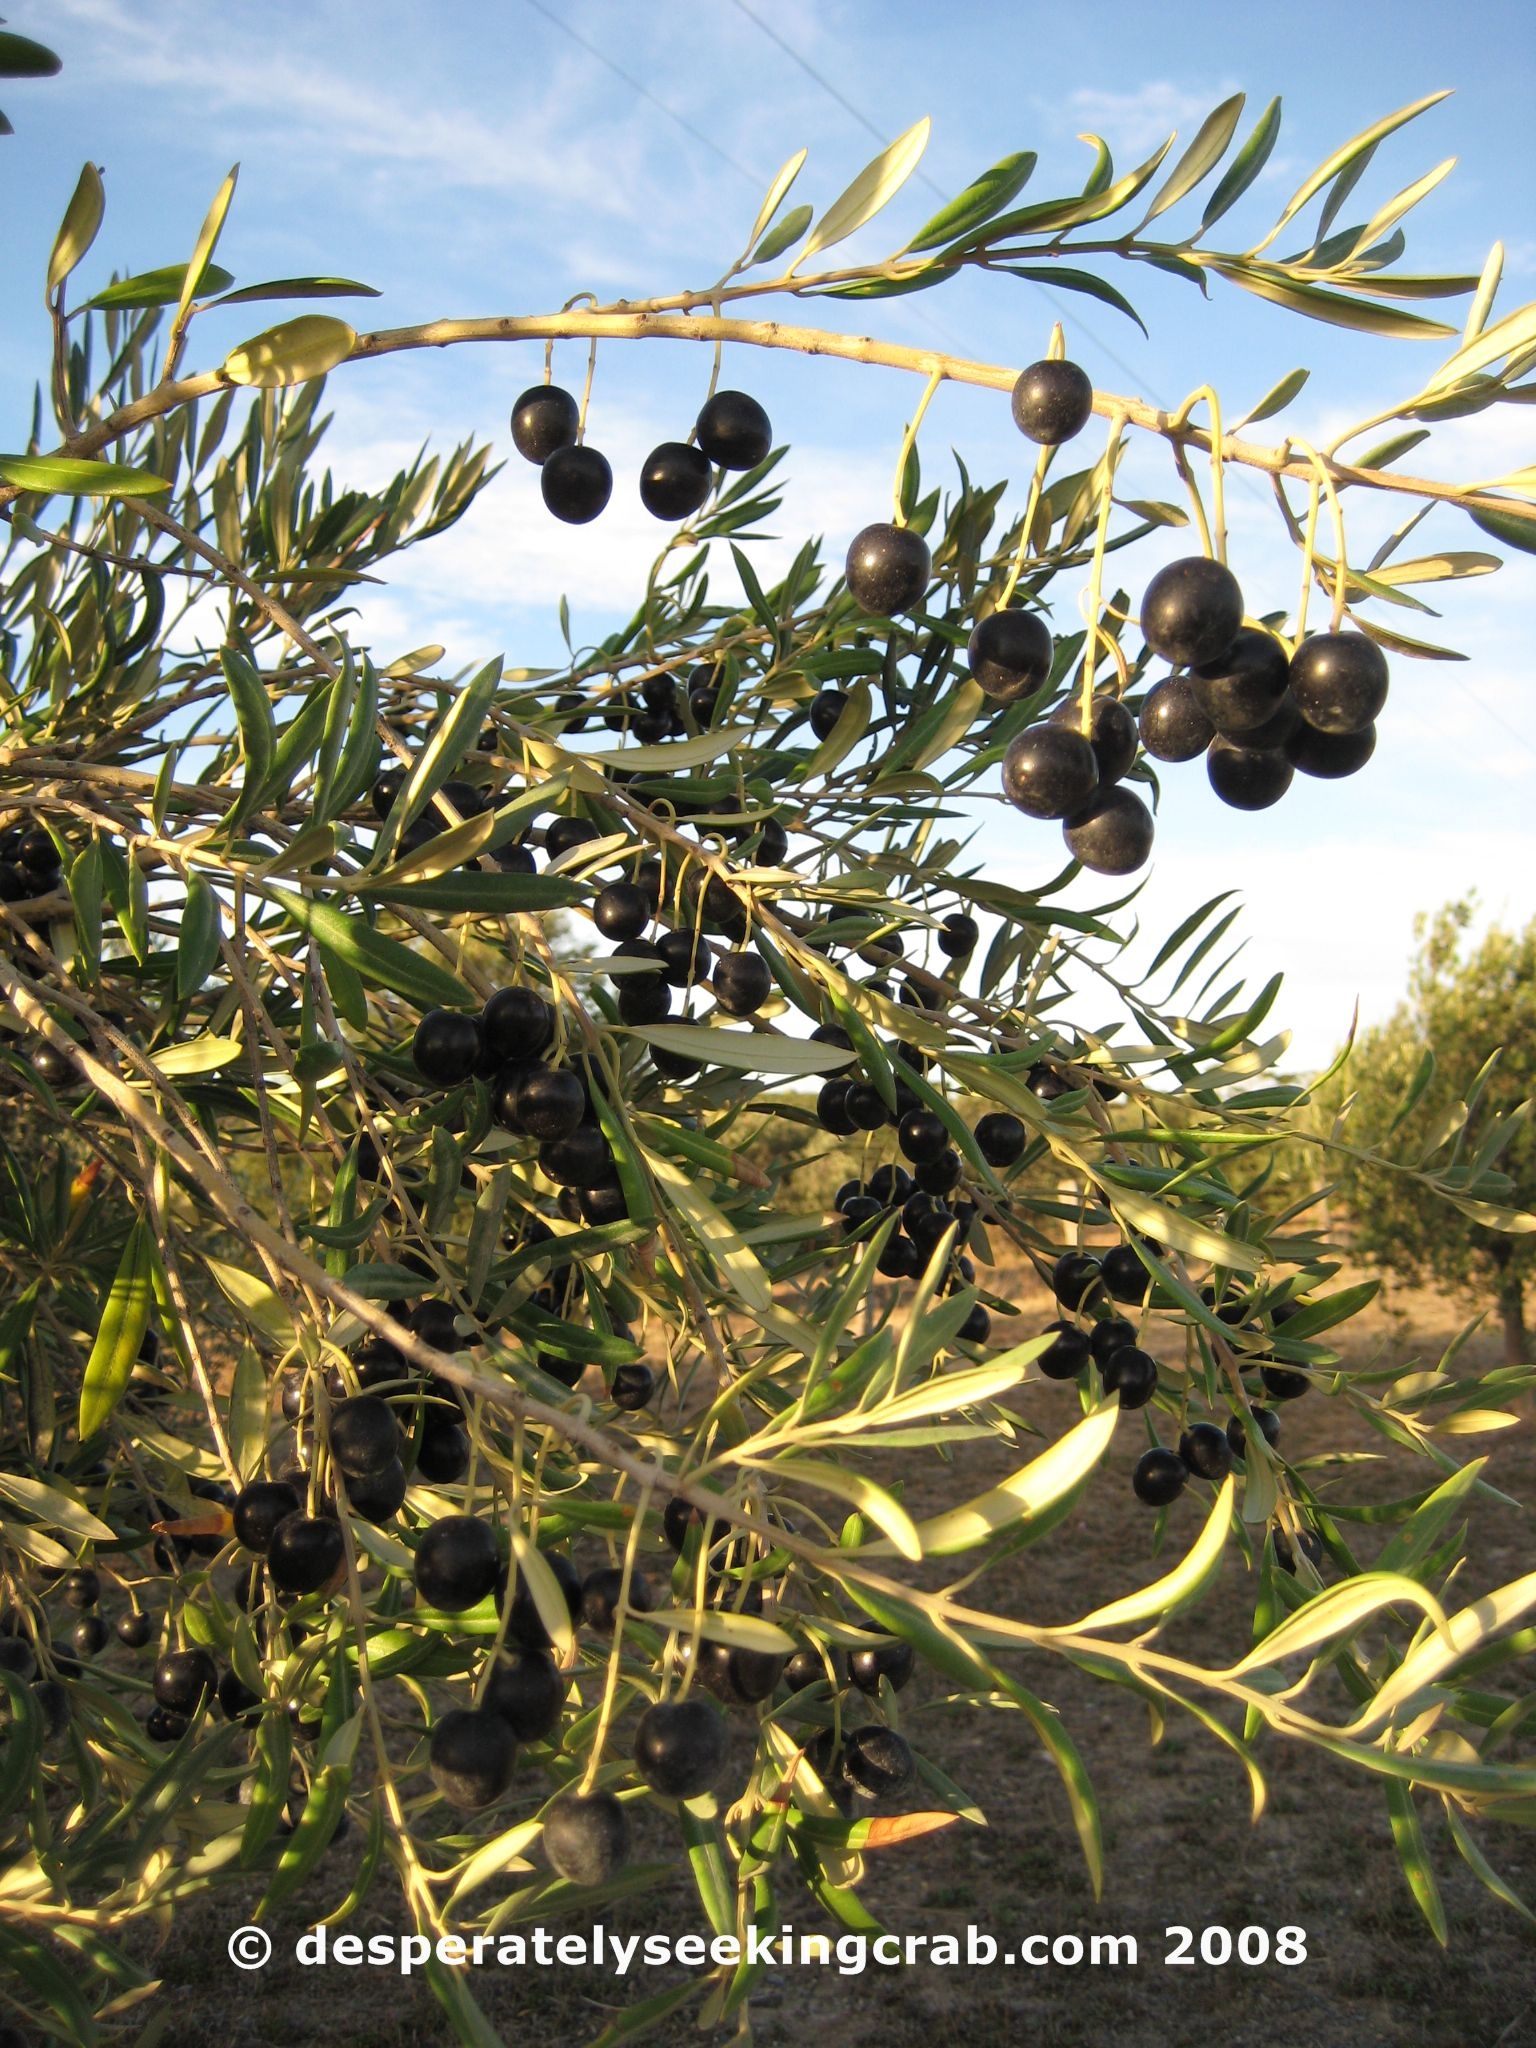 Foraging Wild Olives Desperately Seeking Crab